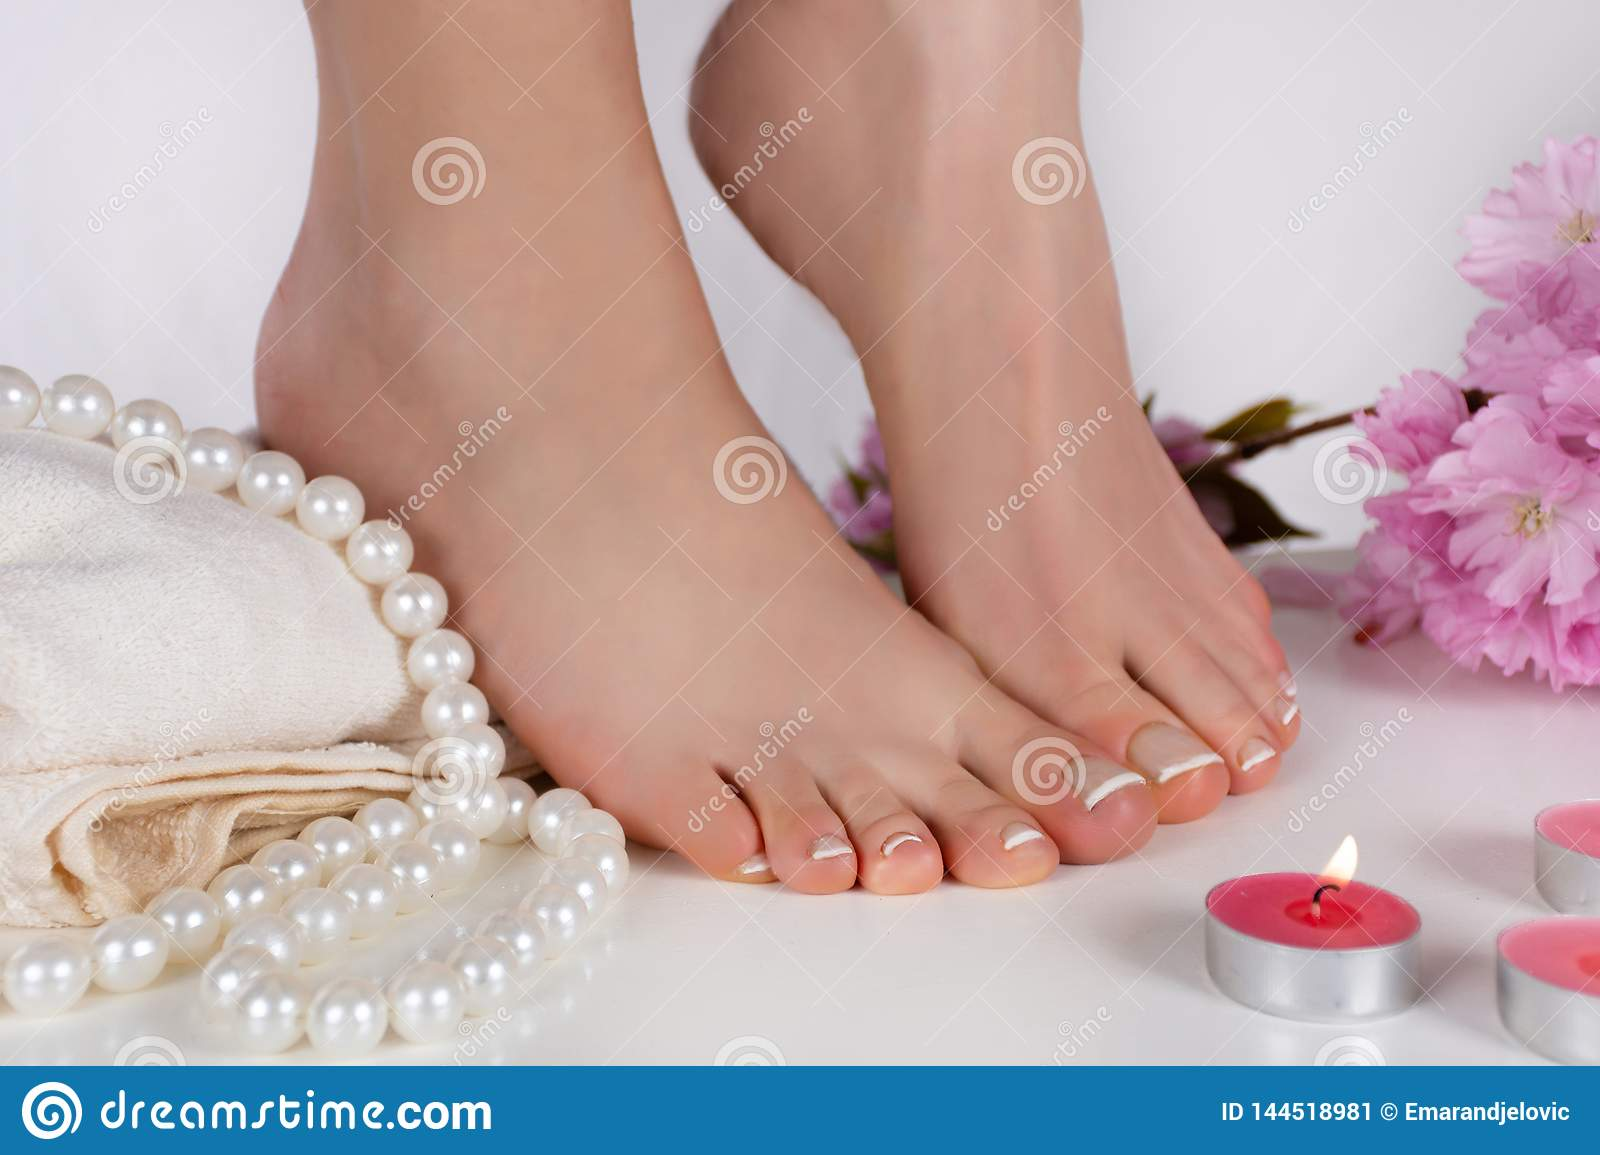 Naked fetish french pedicure